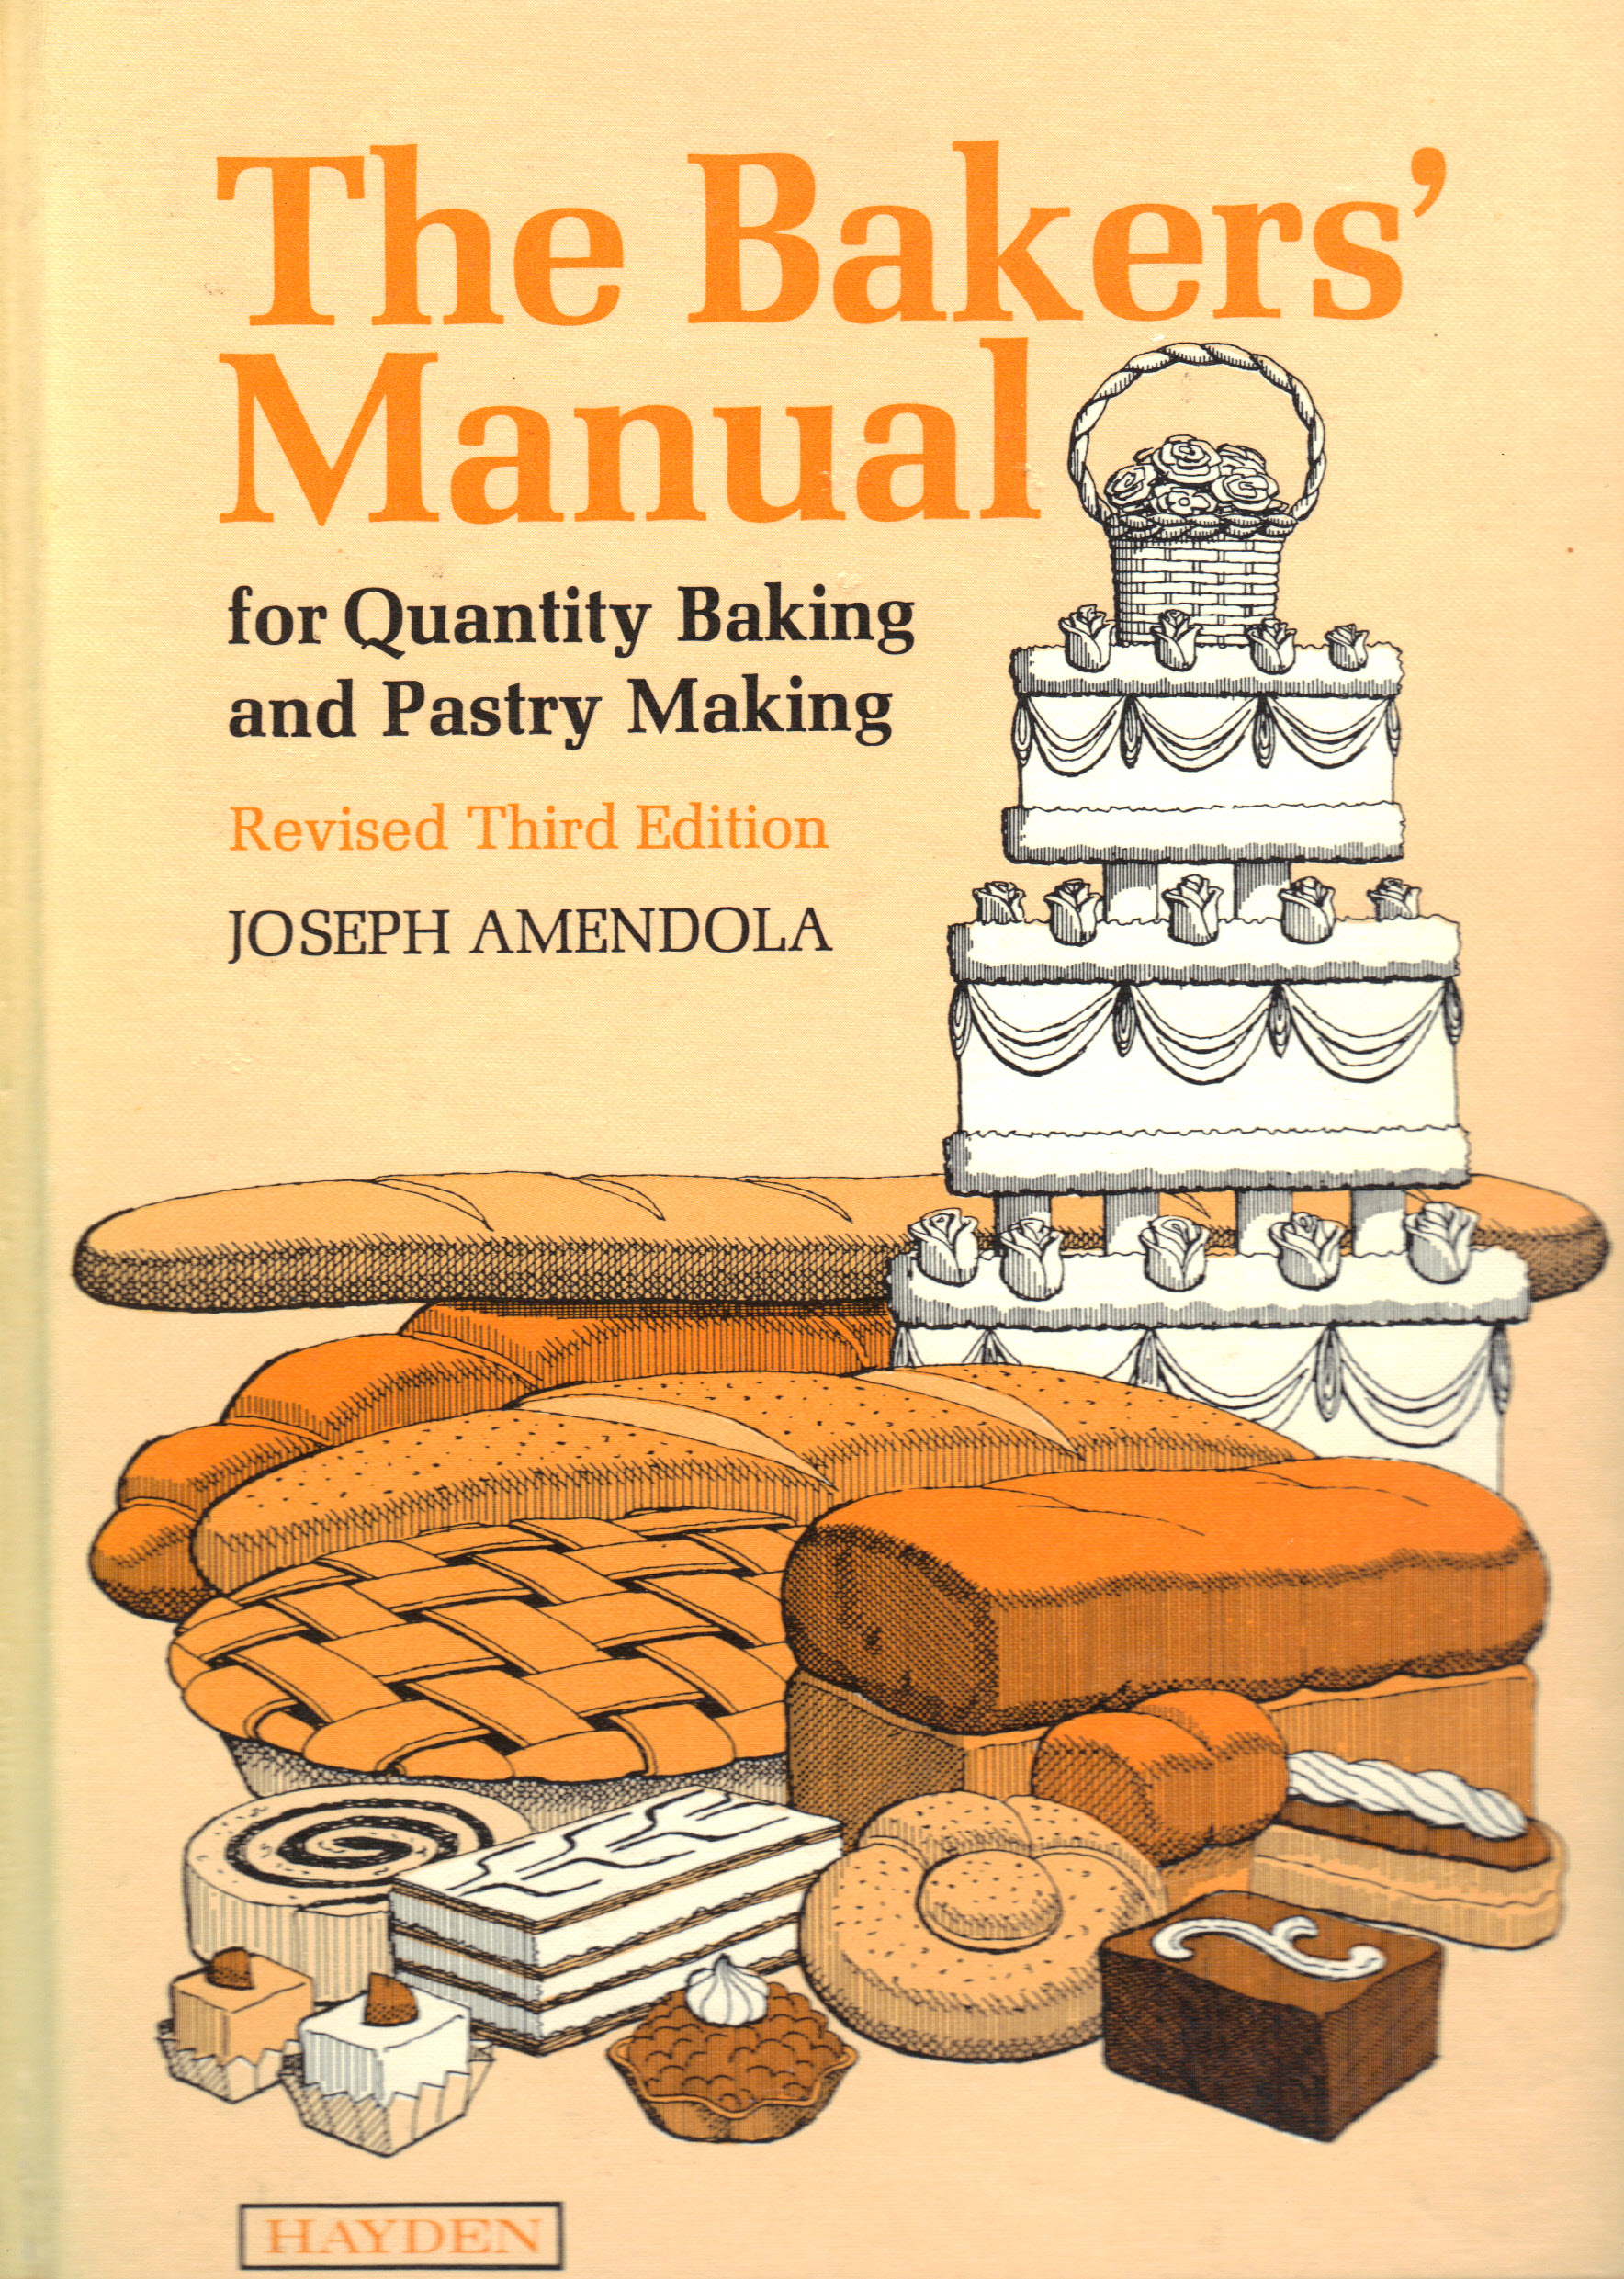 Image for BAKERS' MANUAL FOR QUANTITY BAKING AND PASTRY MAKING